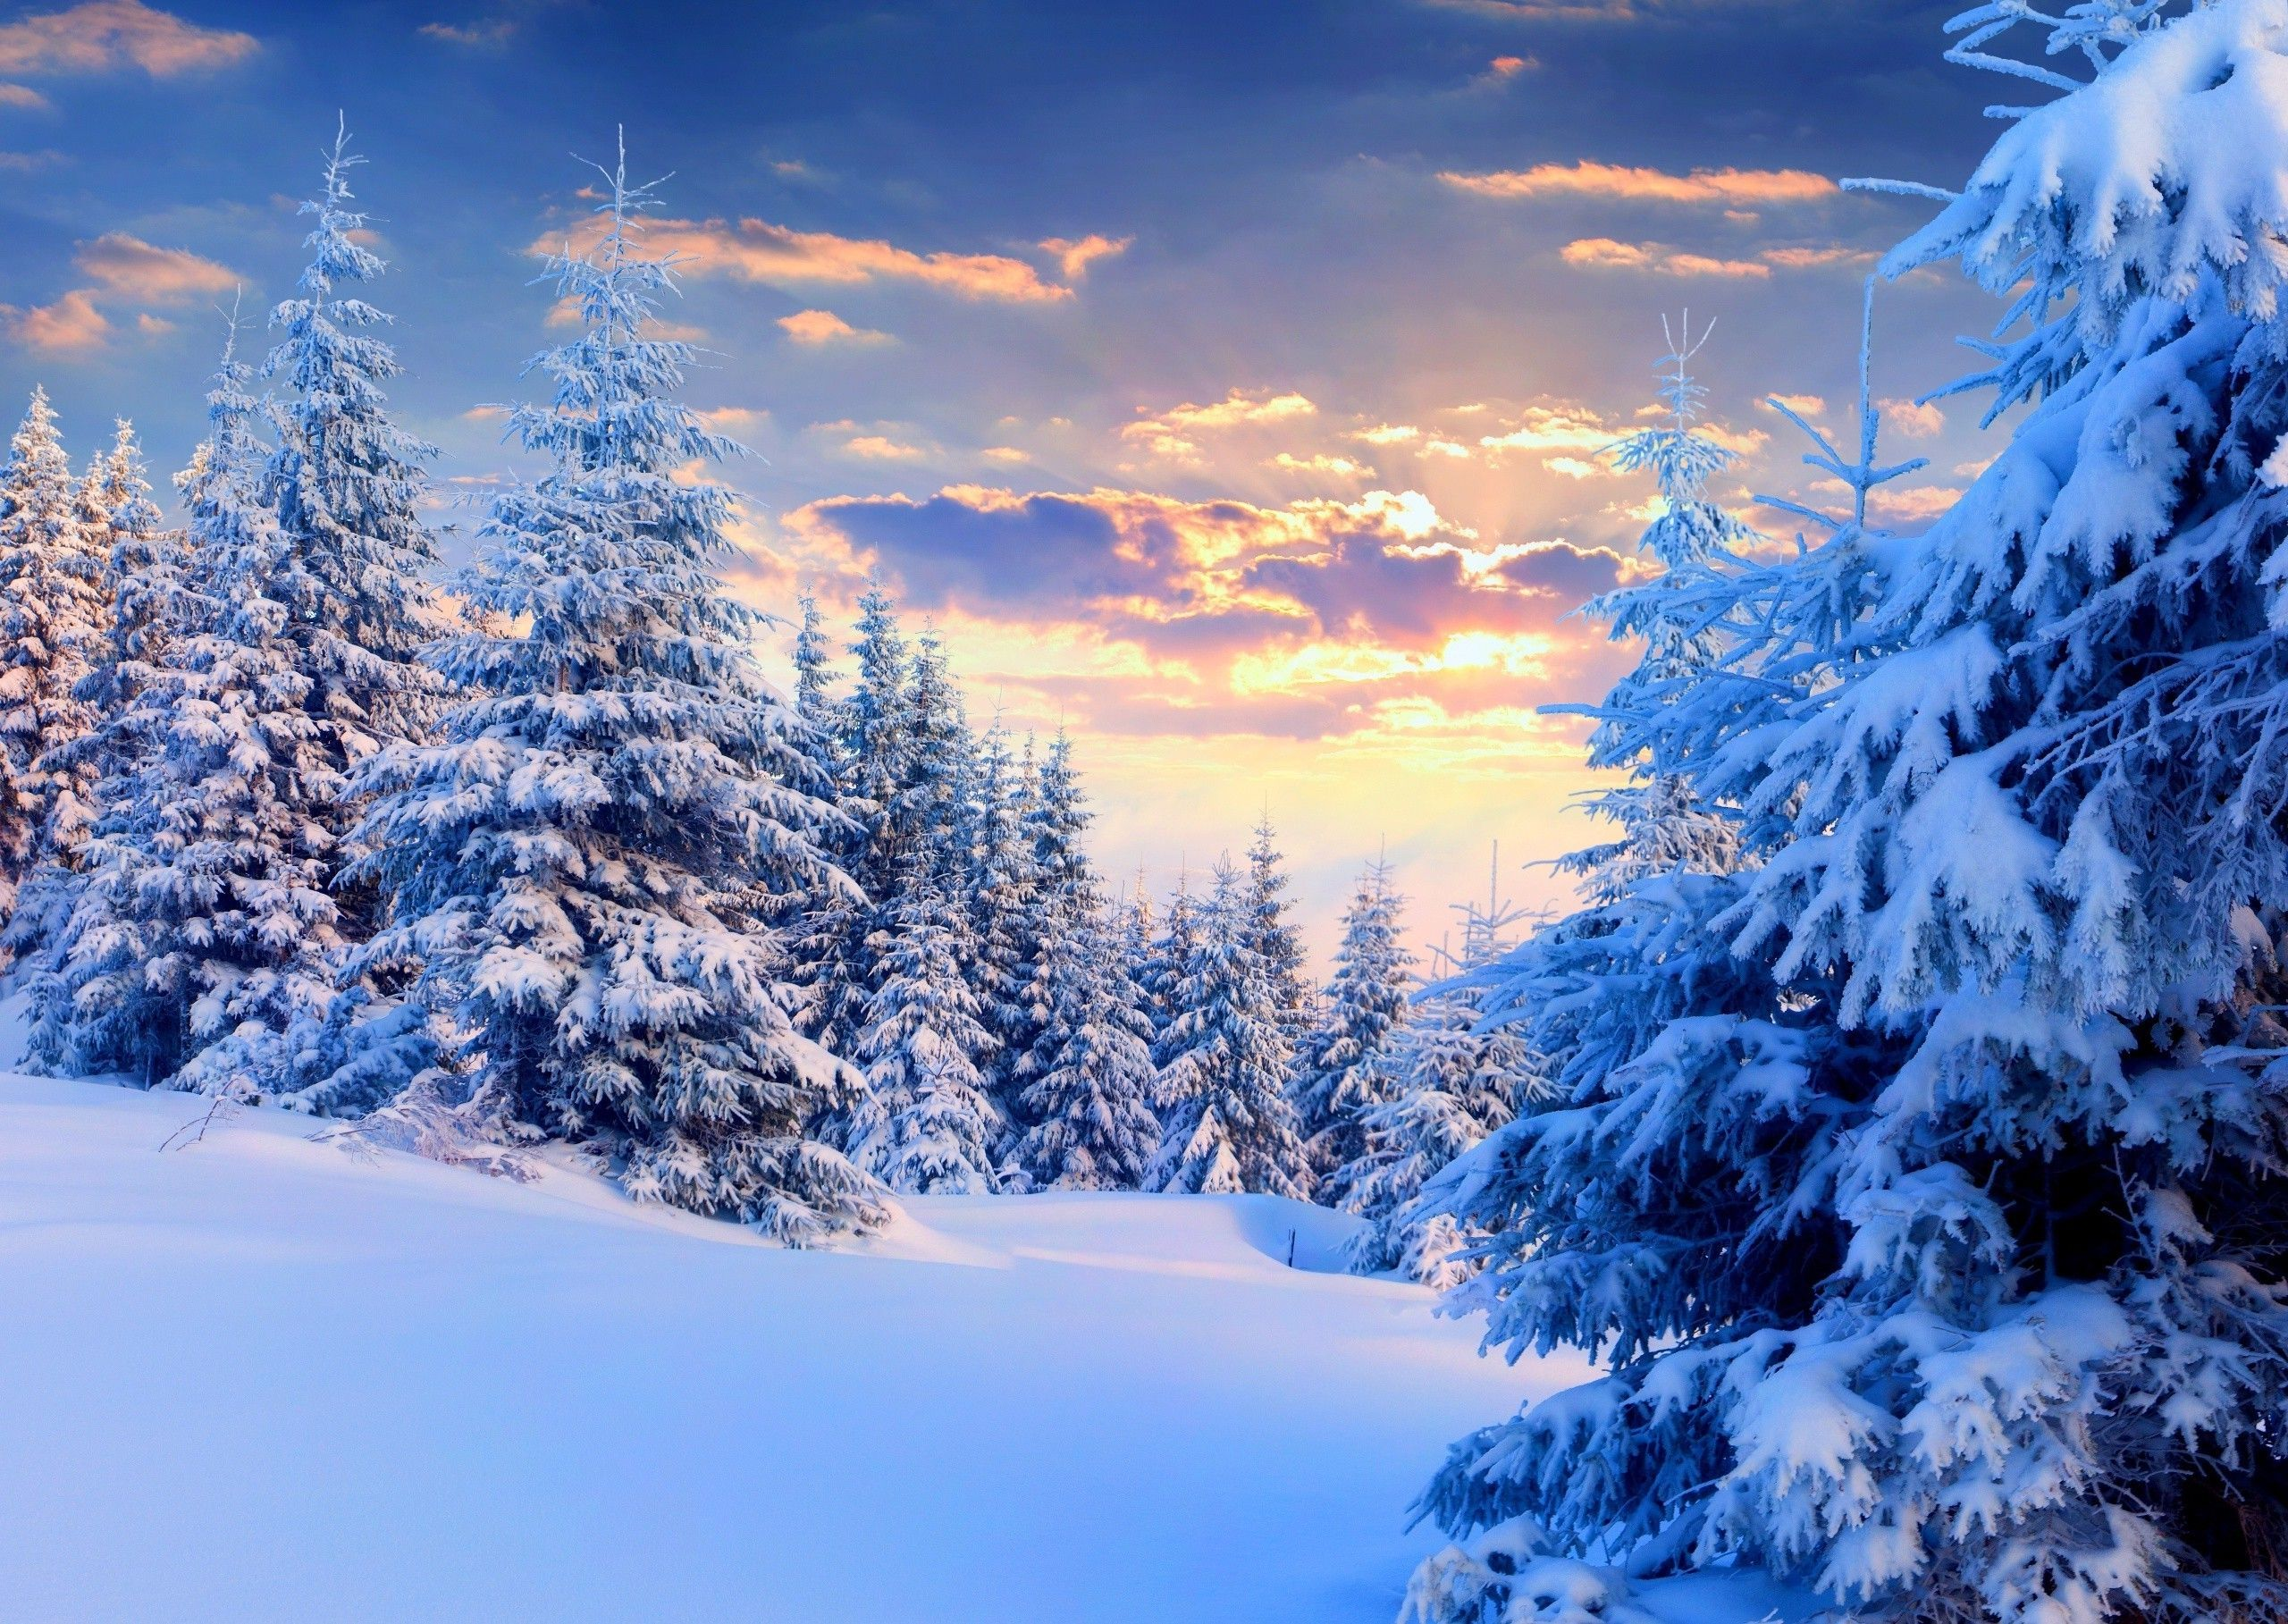 Nature Landscape Snow Winter Forest Trees Sunset Pine Trees Wallpaper And Background Snow Forest Winter Trees Winter Forest